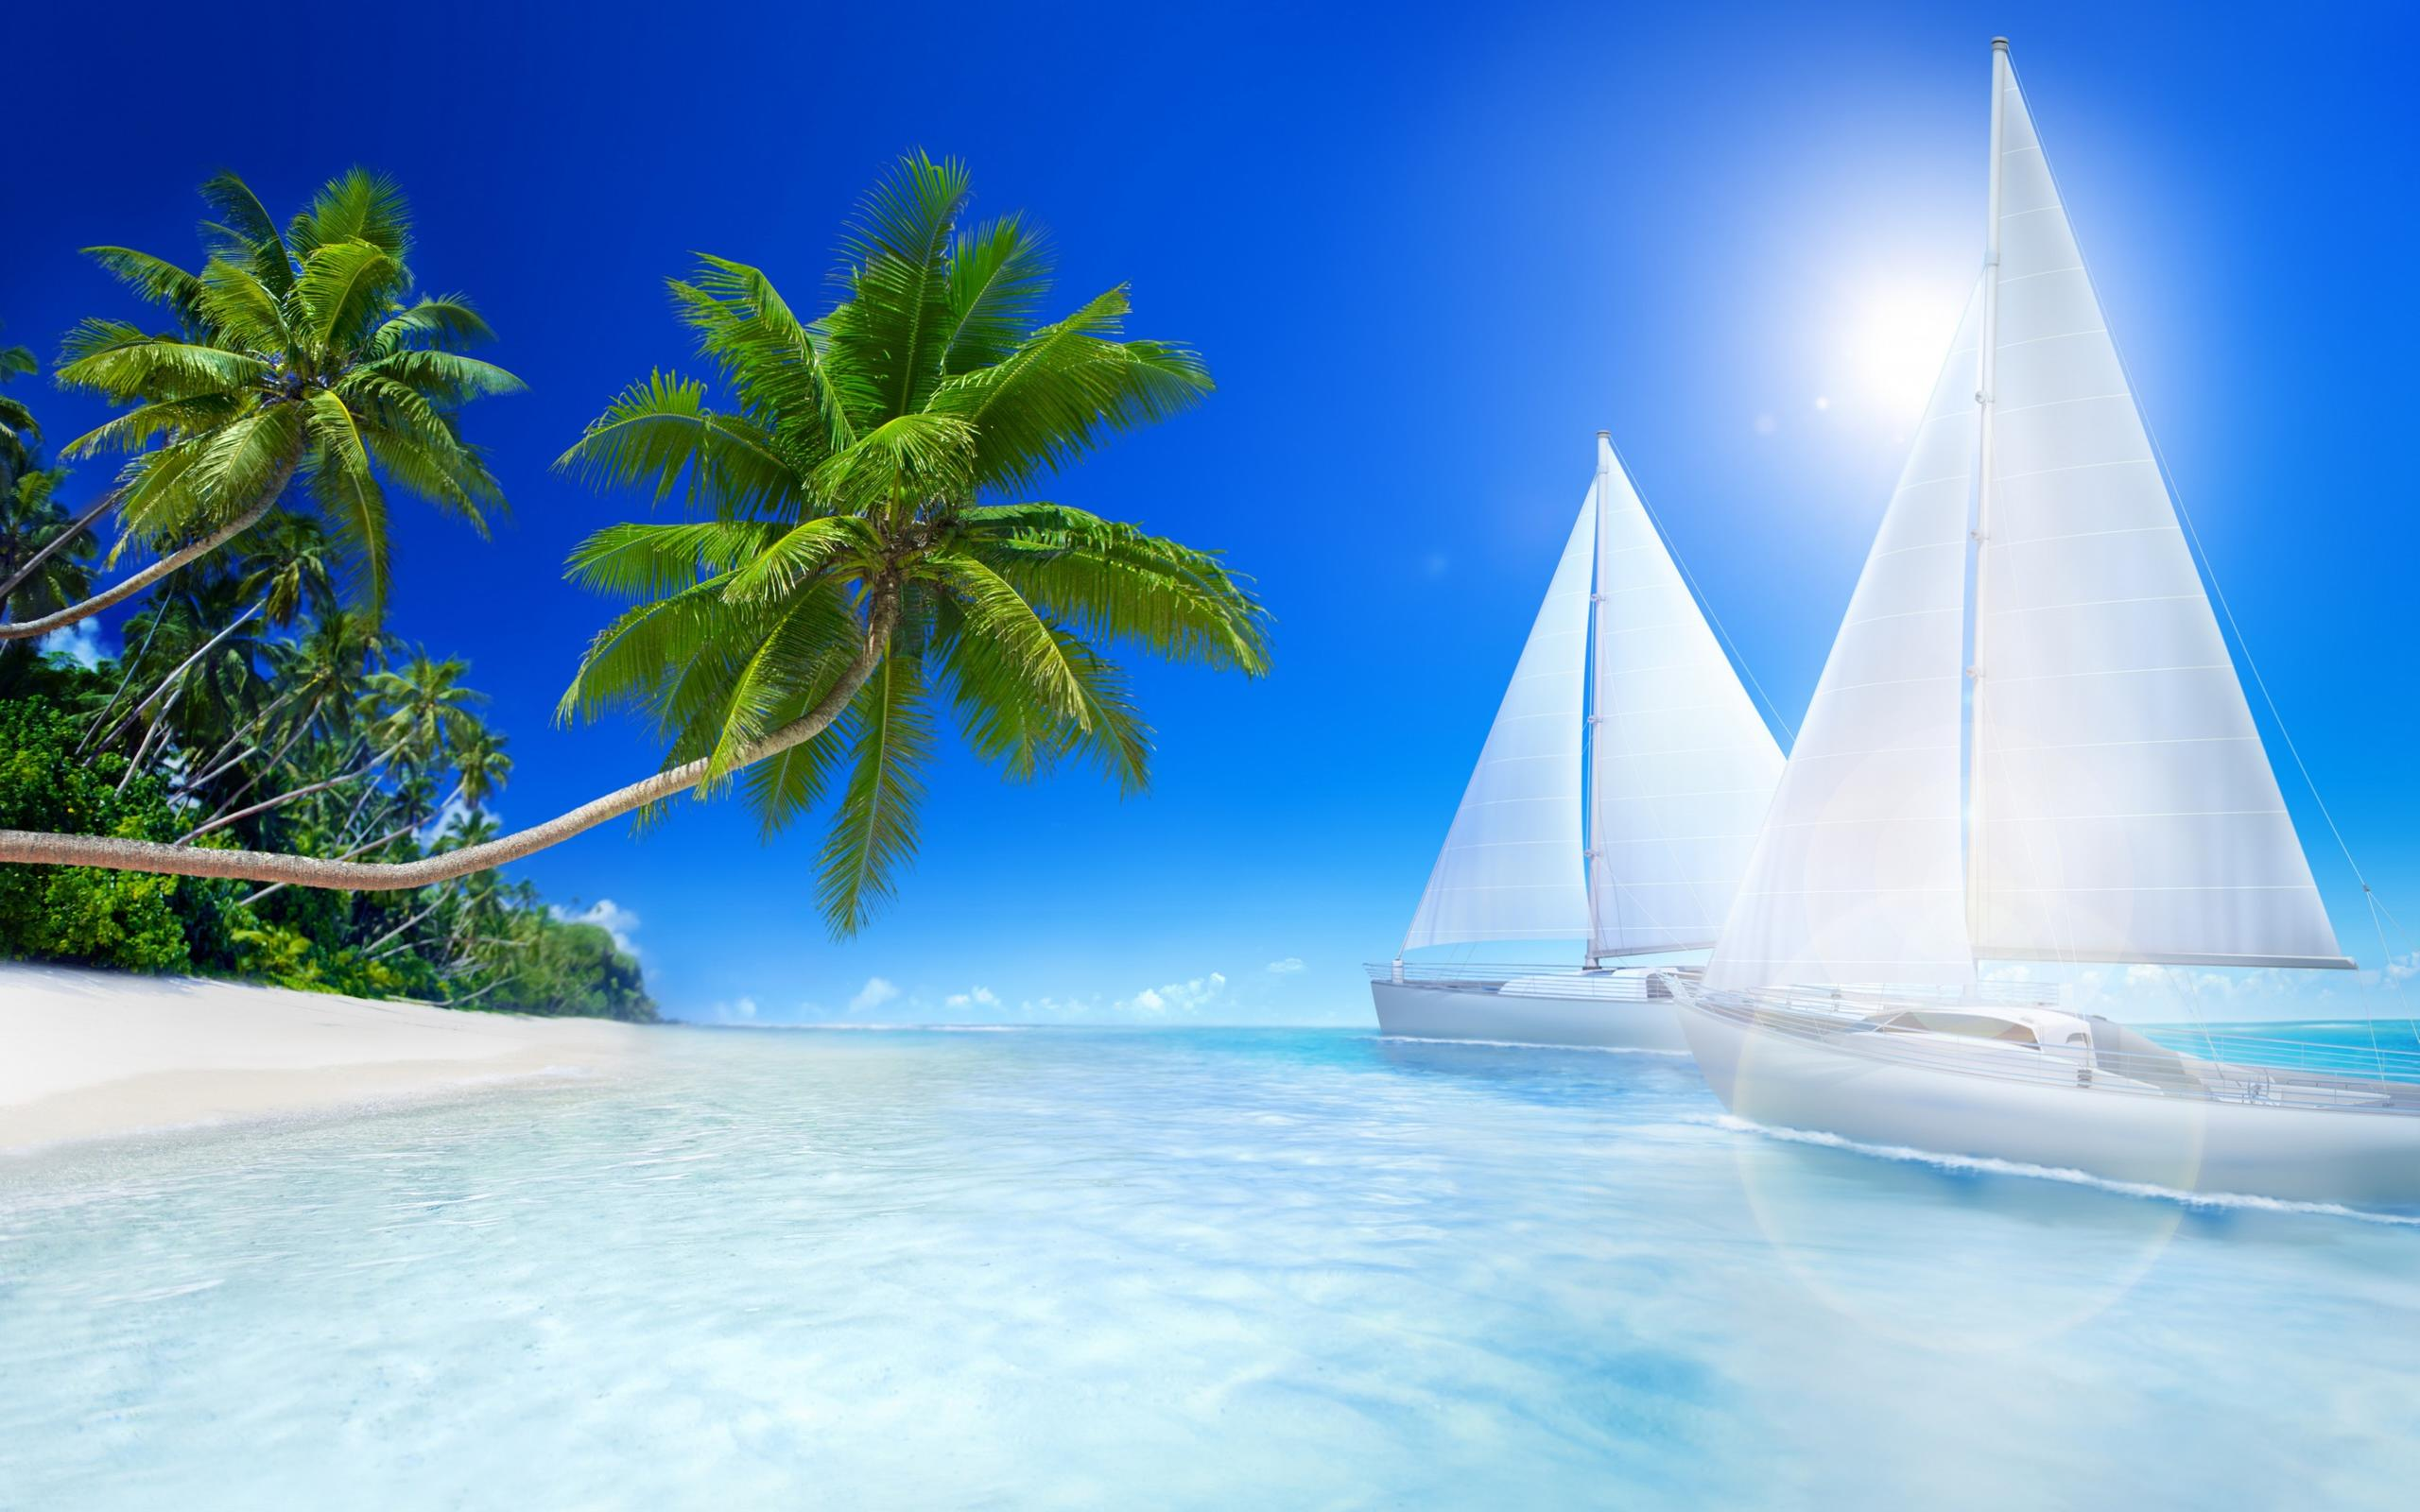 Tropical Beach Palms And Sailboat On The Sea Wallpaper Download 2560x1600